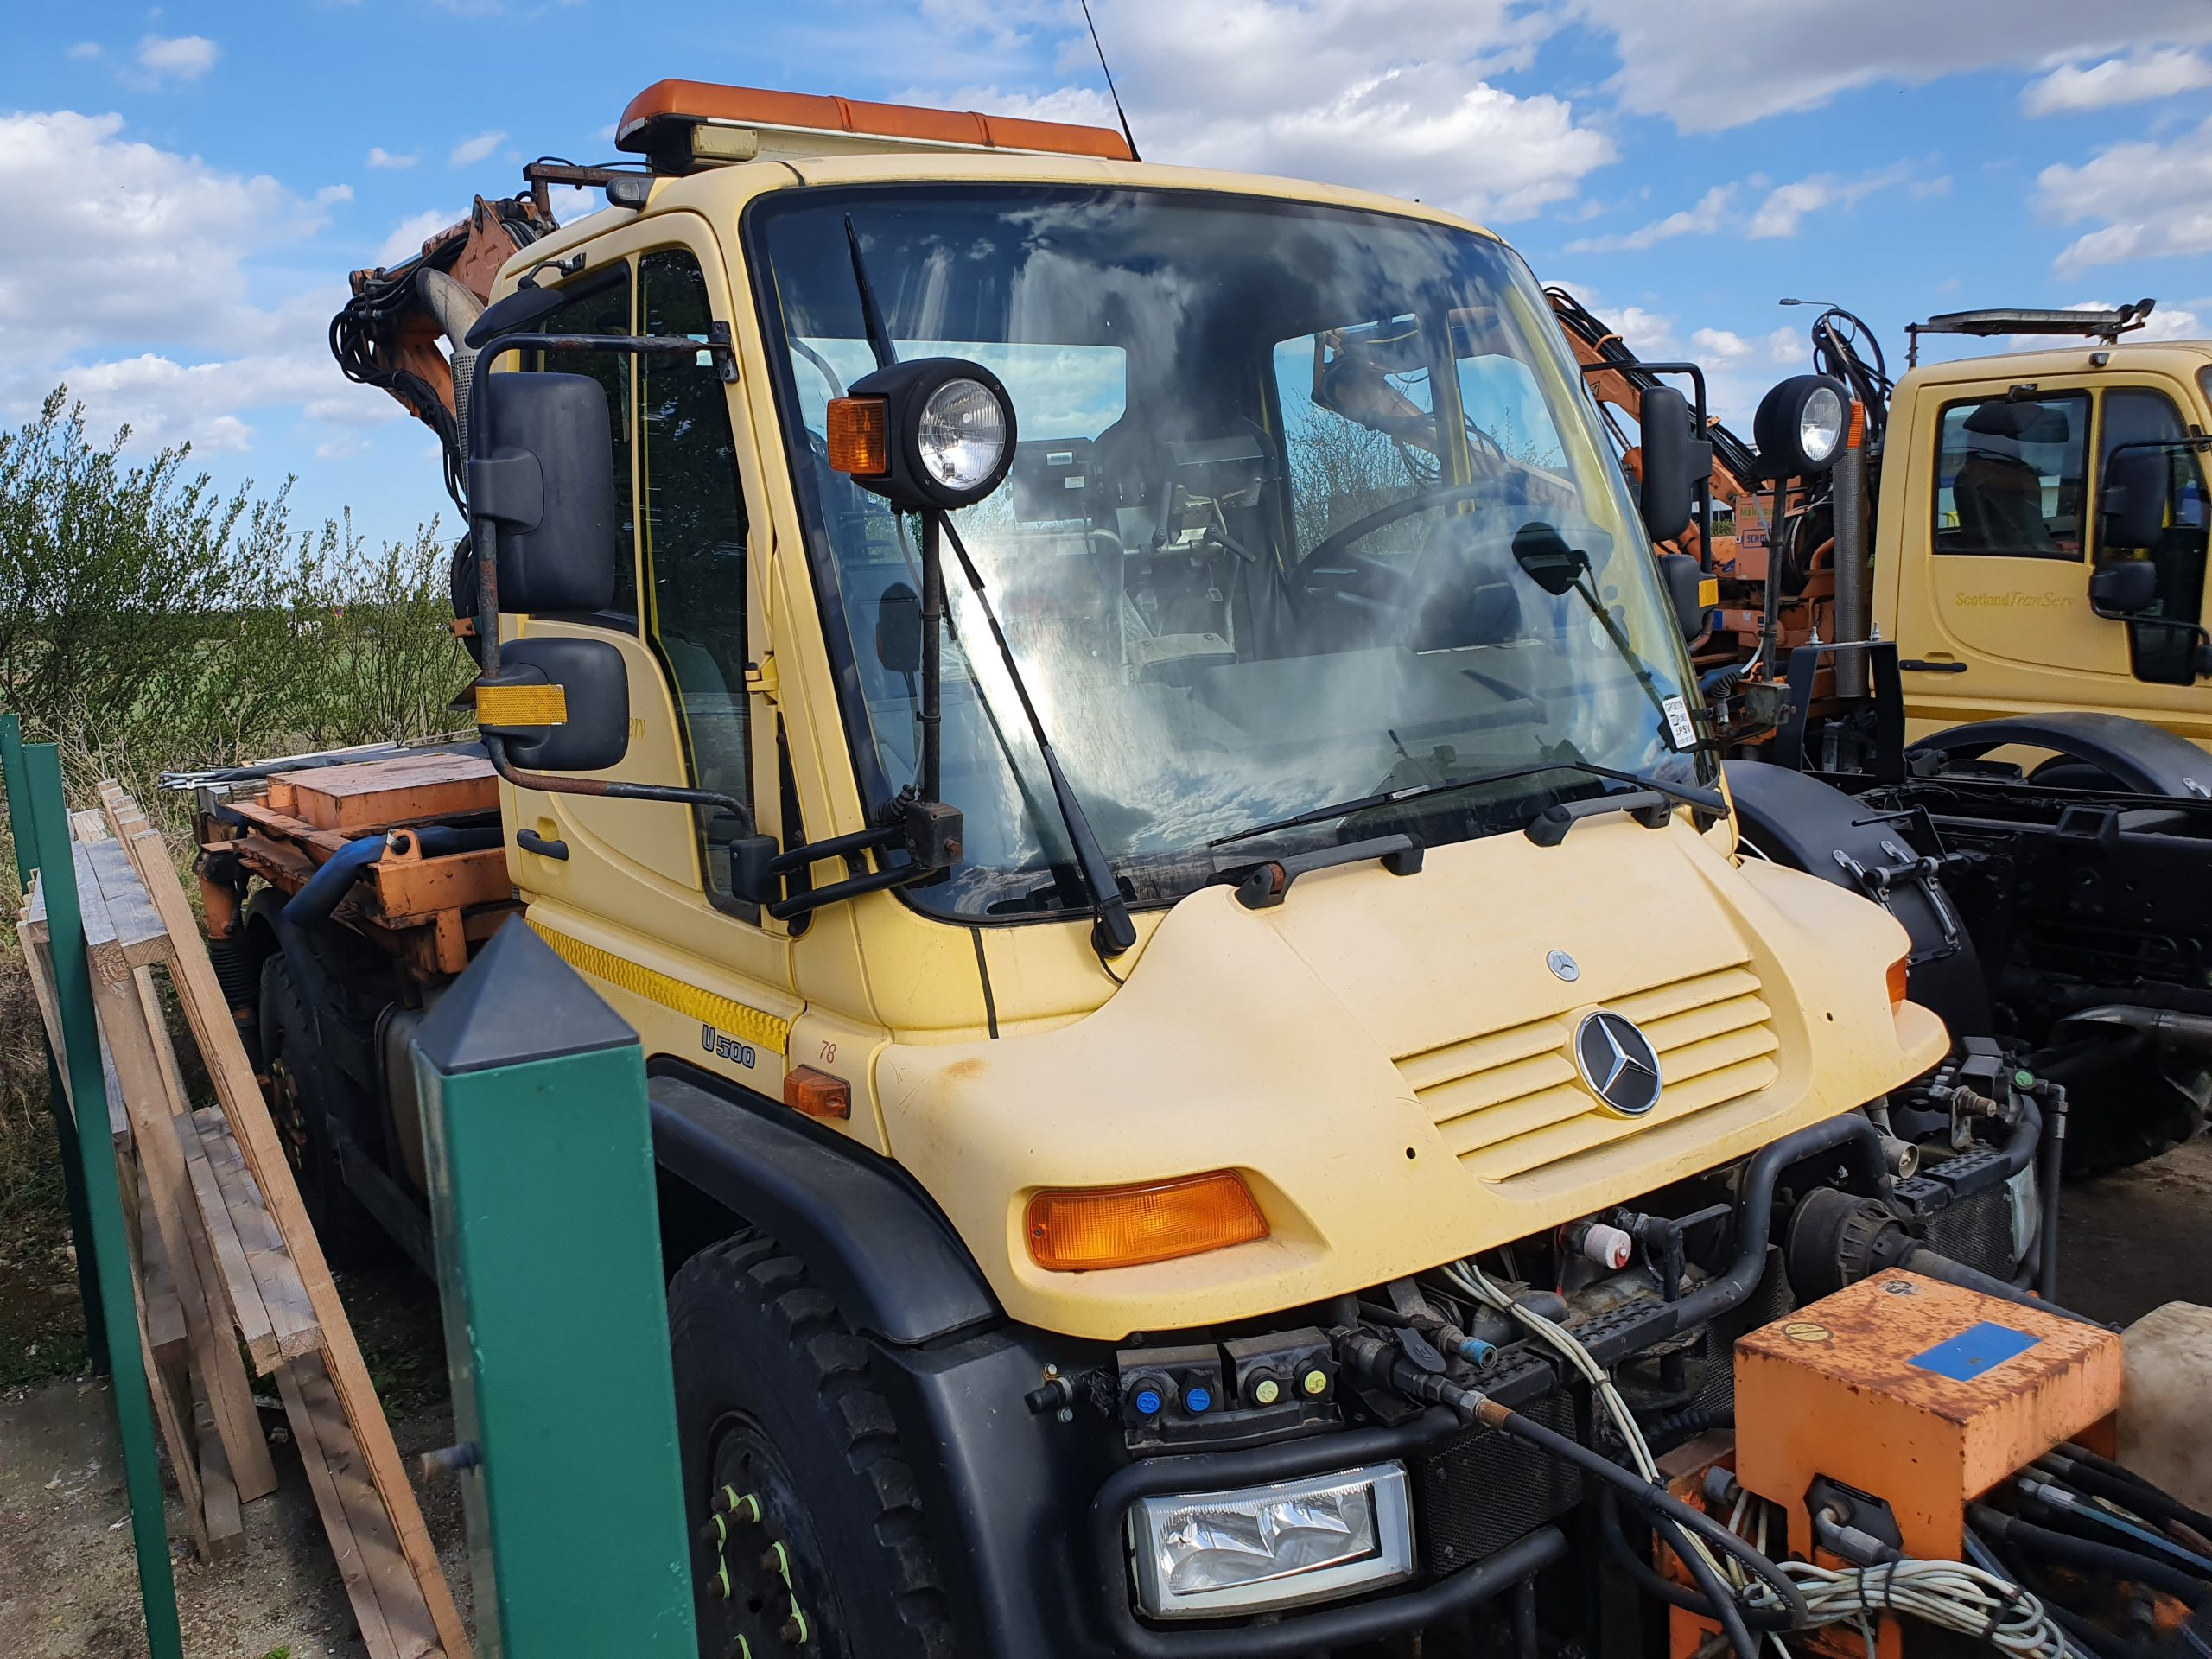 Unimog U500 LWB available for sale